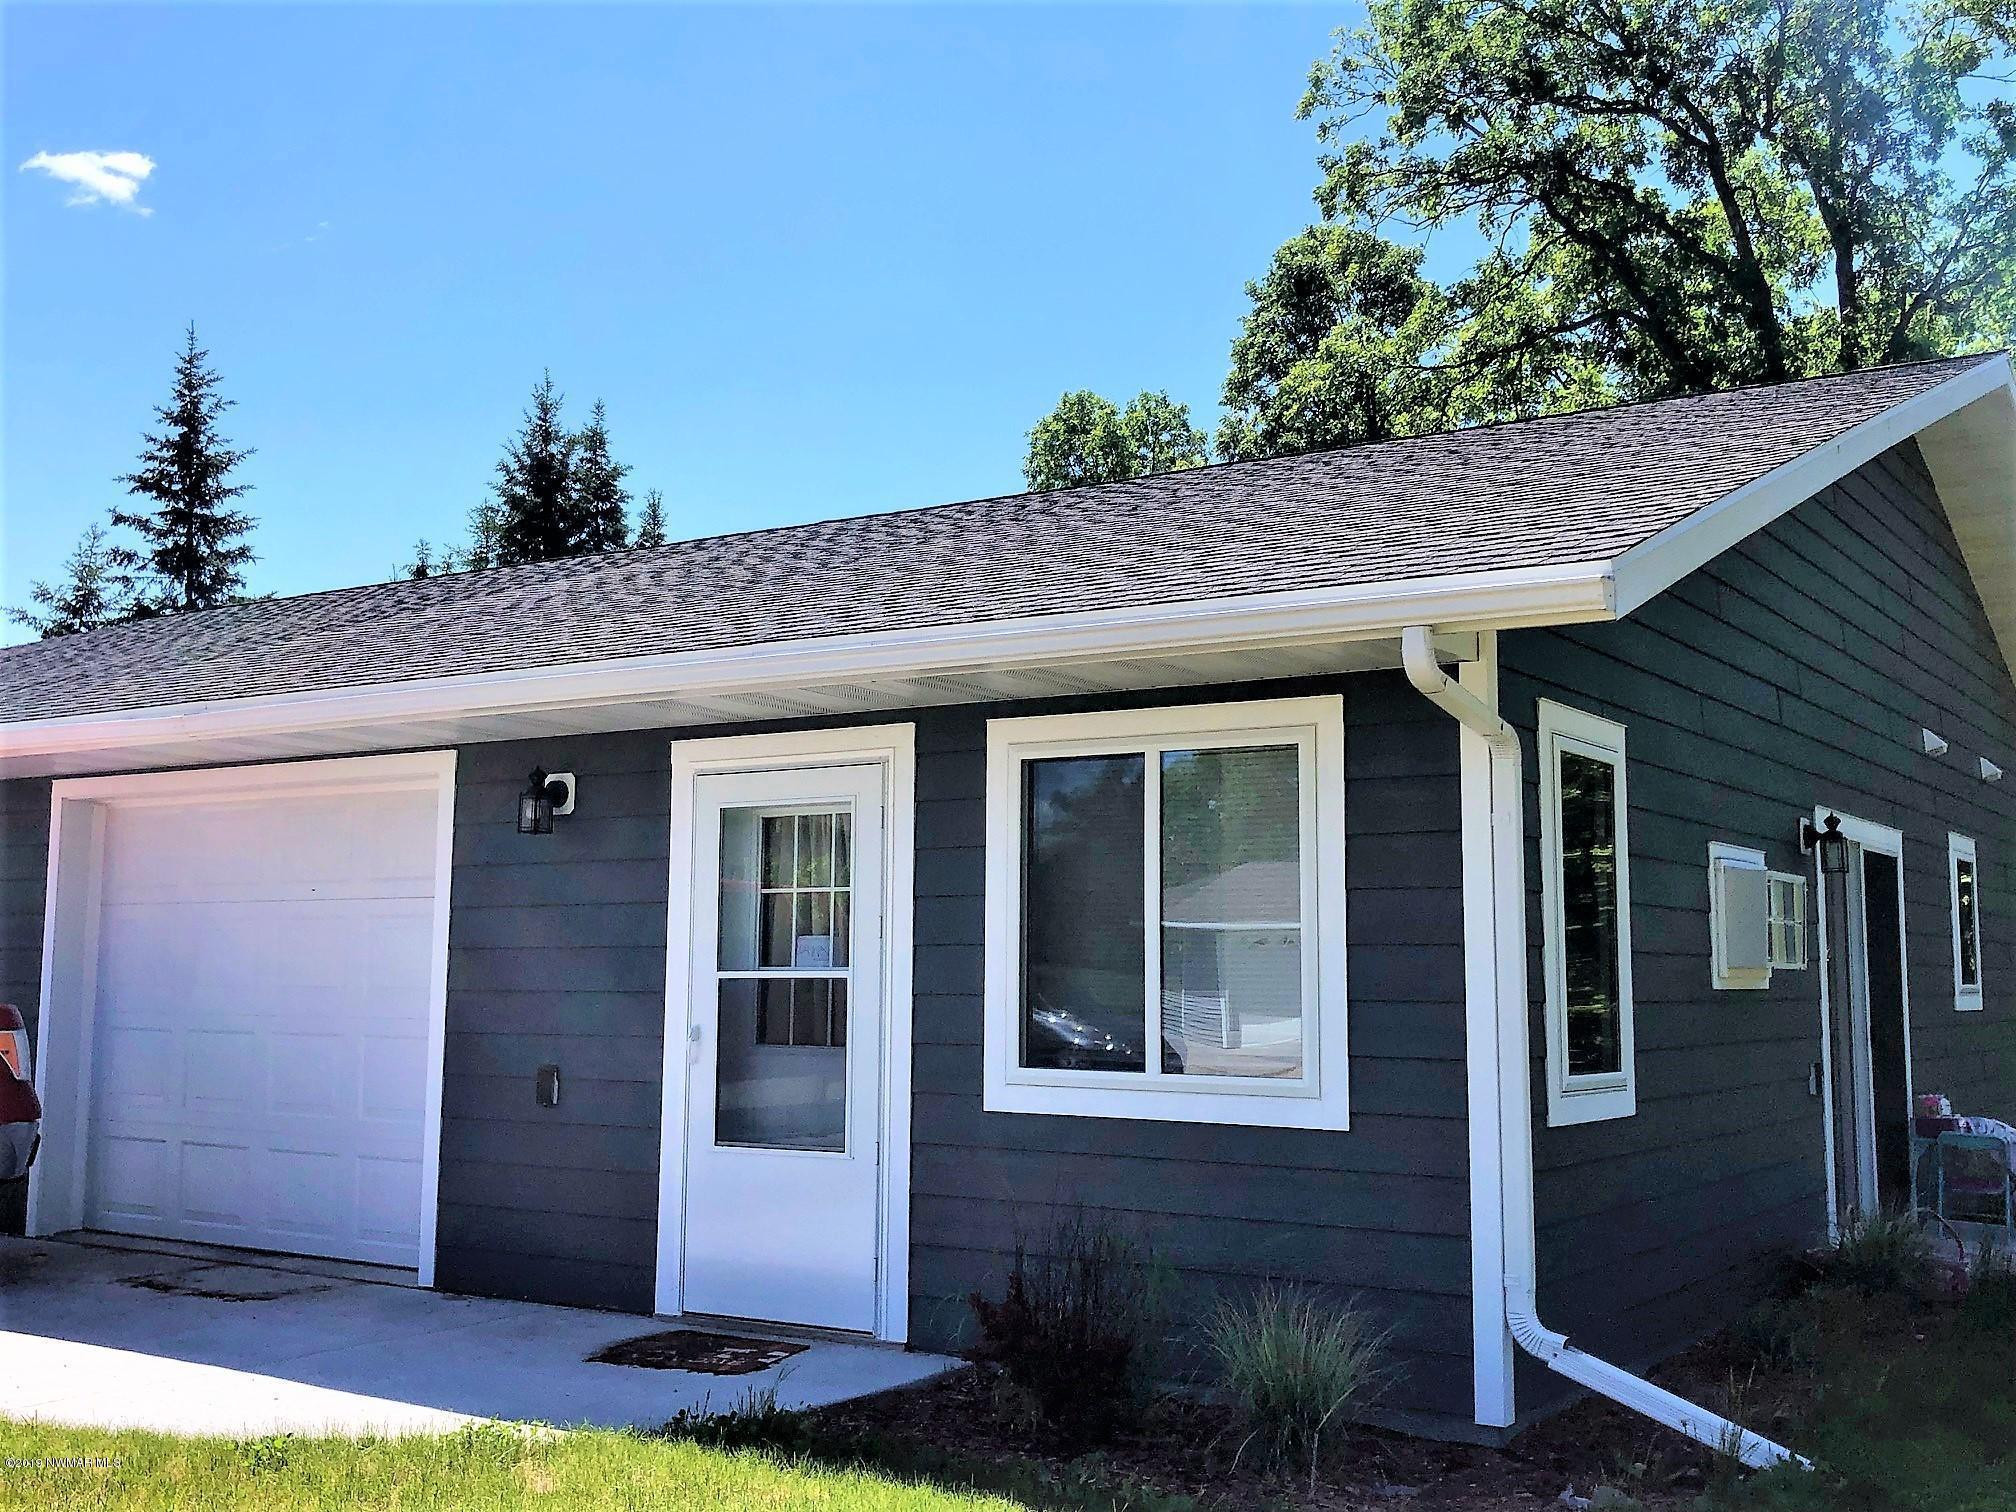 204 West Poplar Unit B Avenue, Badger, MN 54479